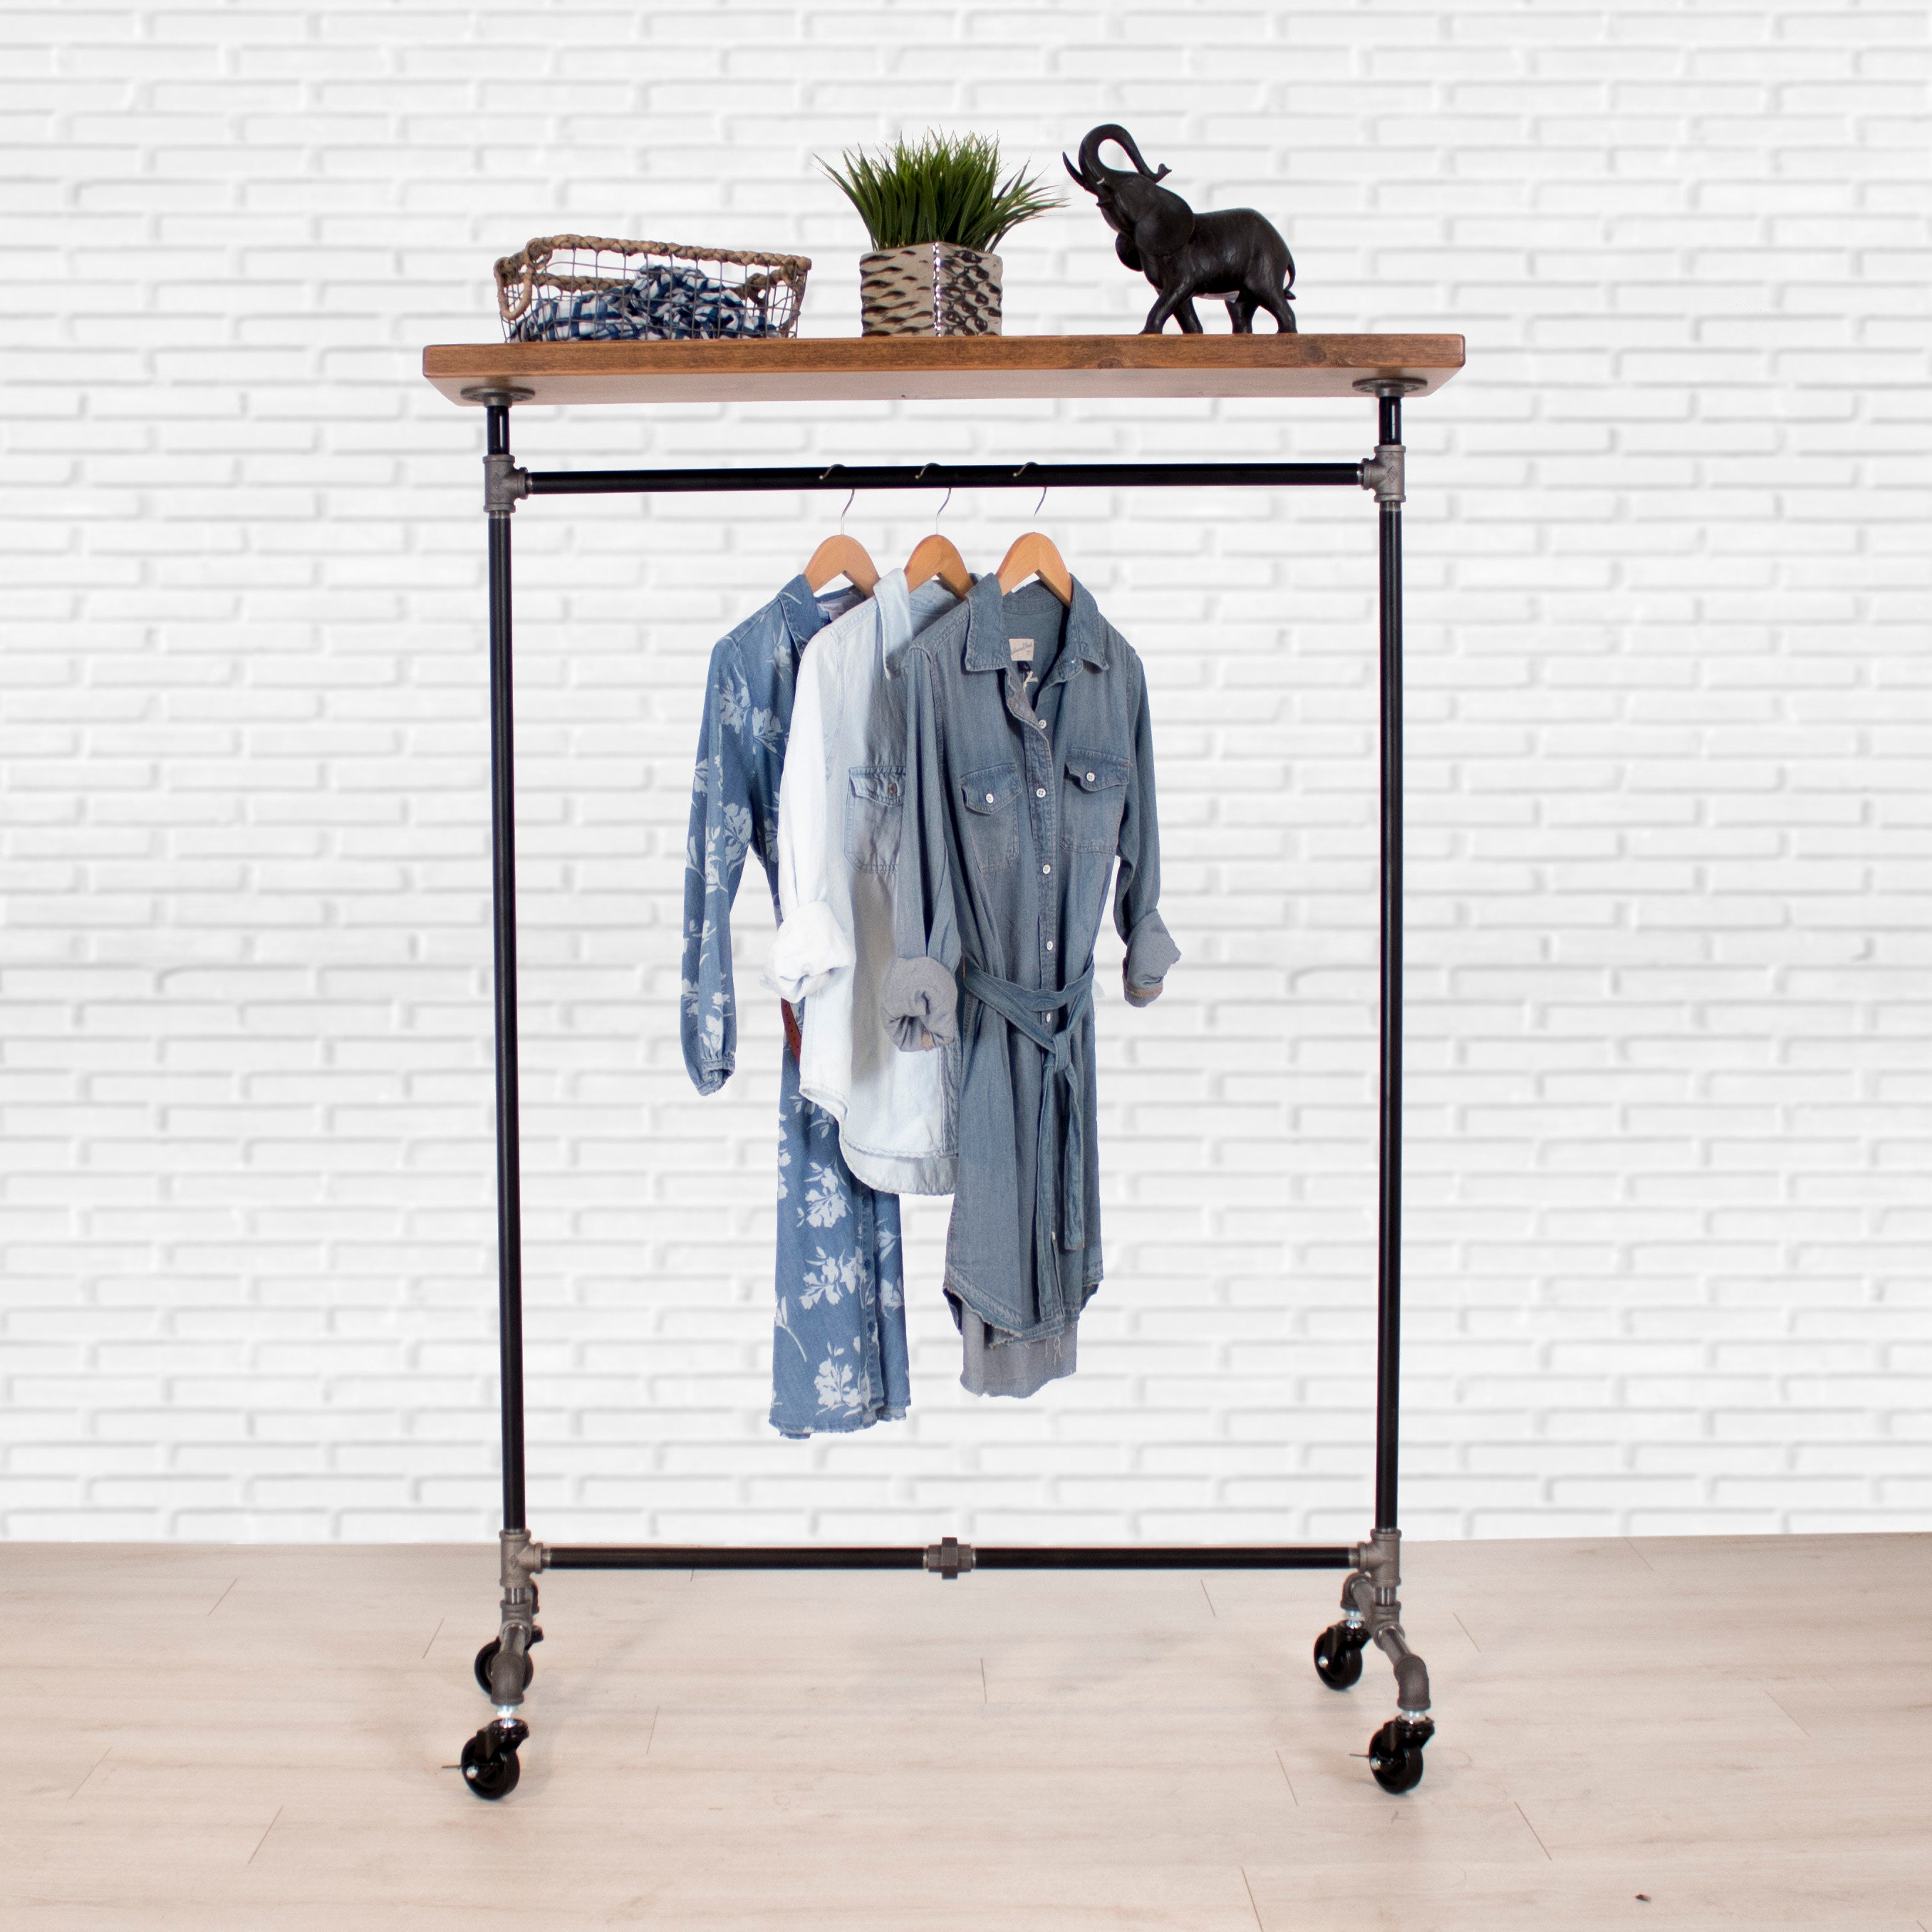 Clothing Rack With Wood Shelf Closet Storage Industrial Pipe Clothing Rack Clothes Rack Garment Rack Fast Free Shipping